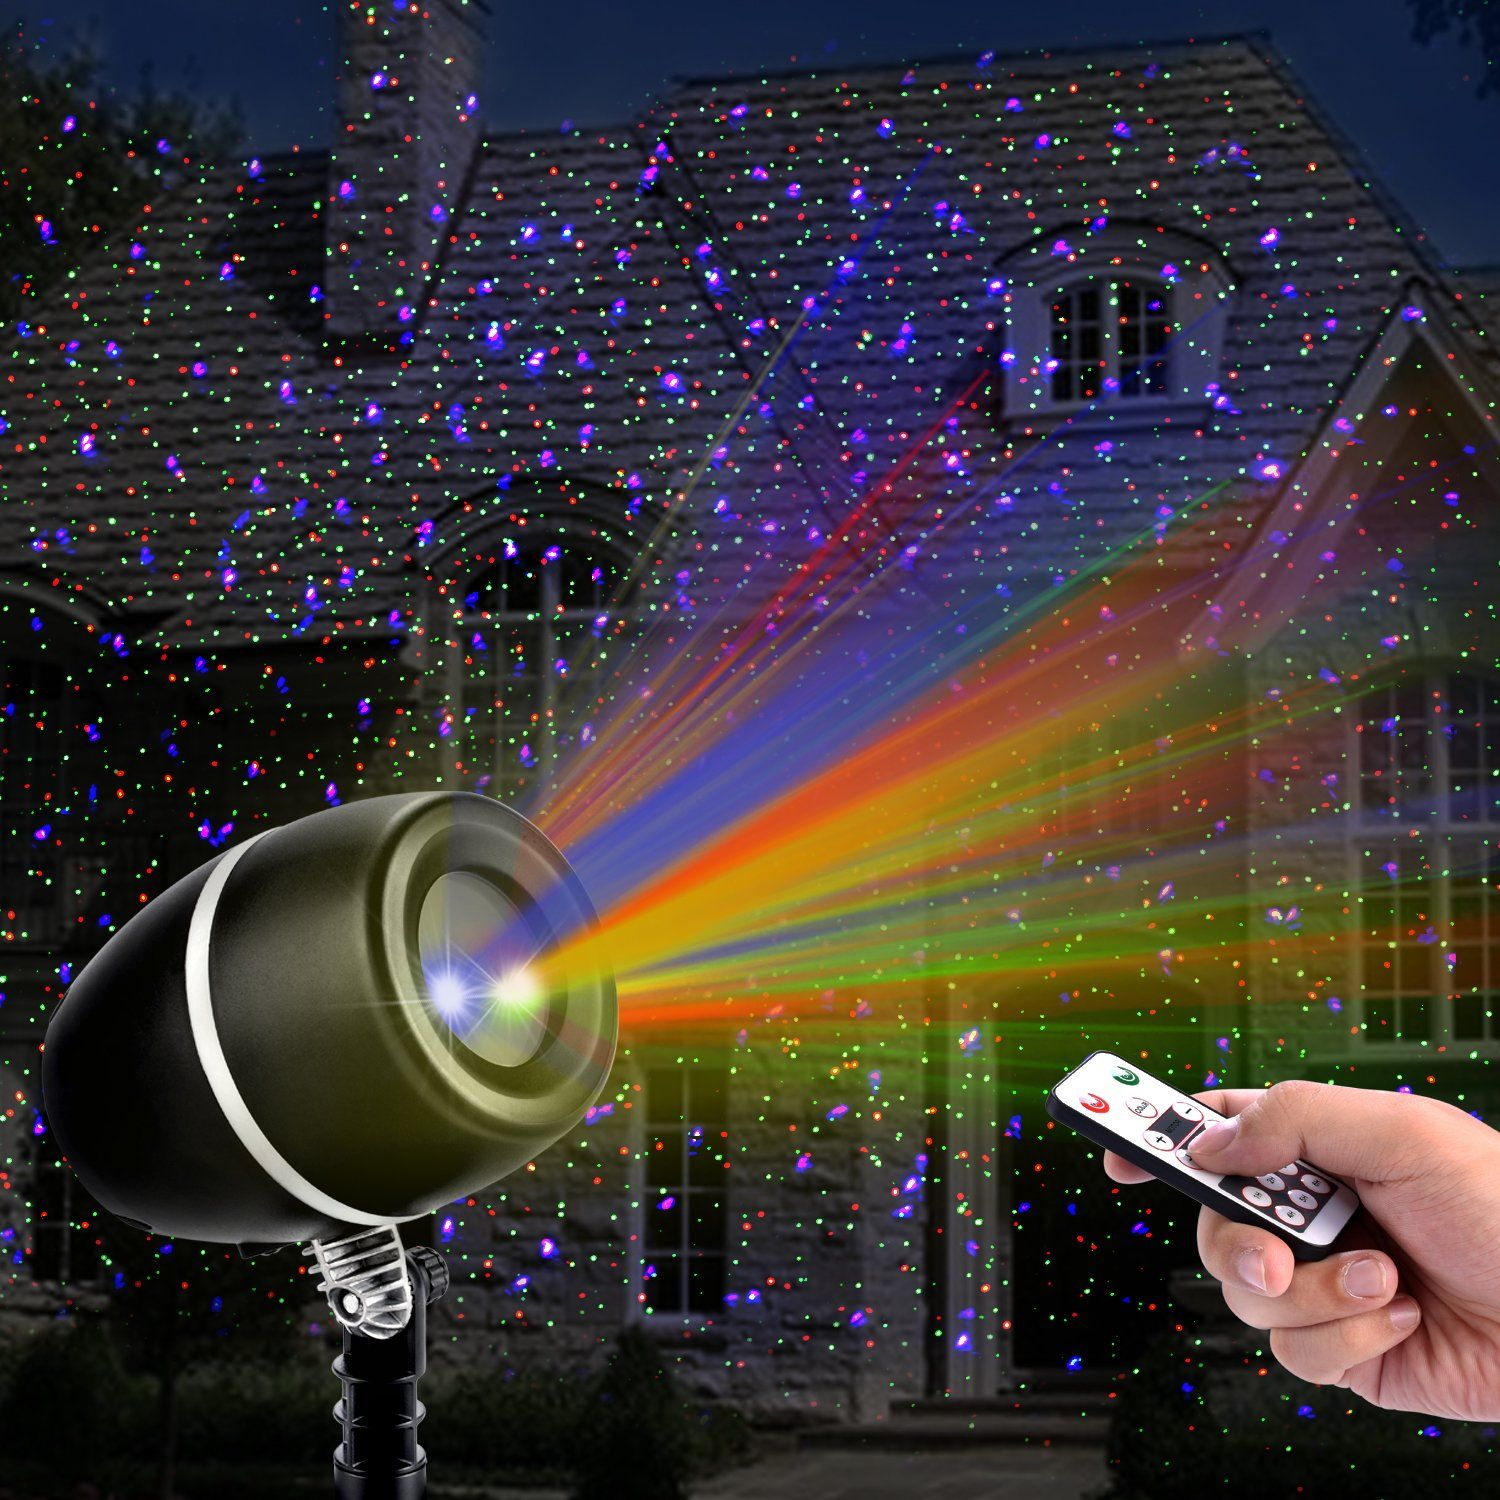 christmas laser lightsoutdoor projector lights with remote control by clustars ip65 waterproofred green and blue laser light show garden spotlight for